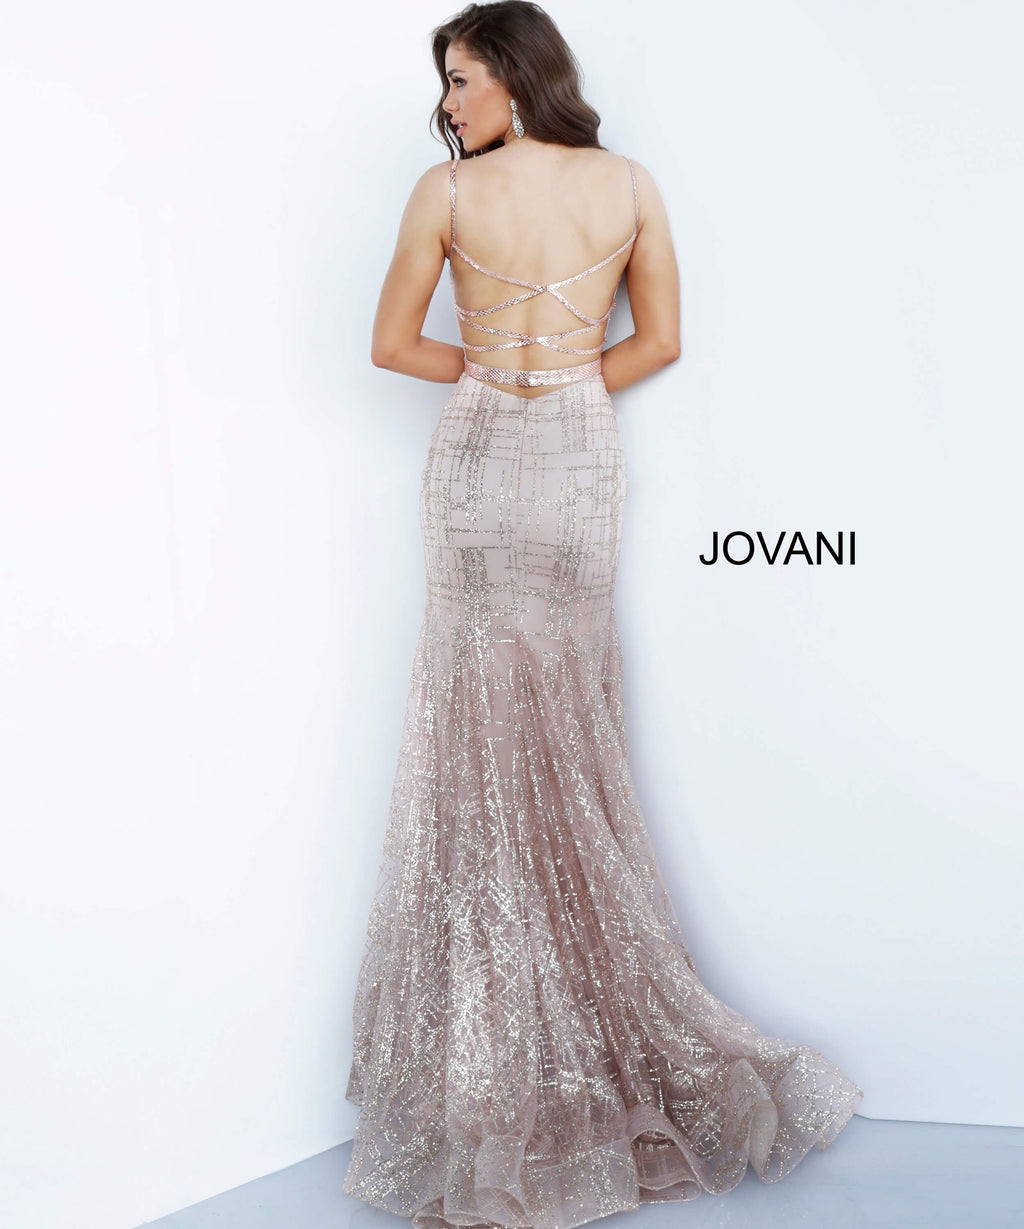 JOVANI 2388 Plunging Neck Evening Dress - CYC Boutique